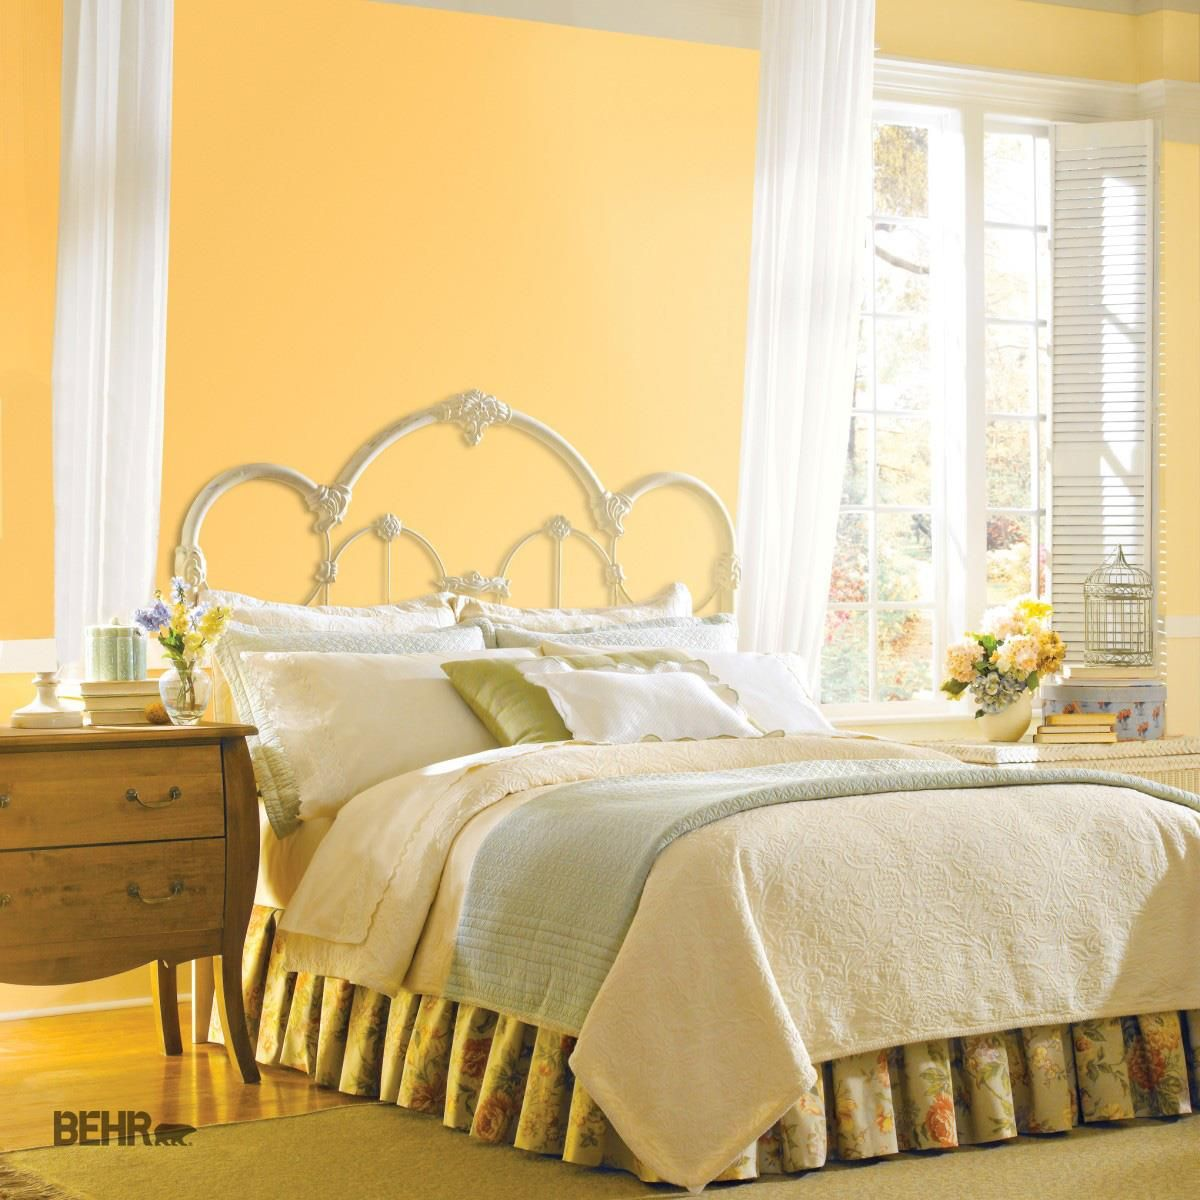 behr fuzzy duckling p270 5 bedroom paint color on behr paint visualizer id=69702